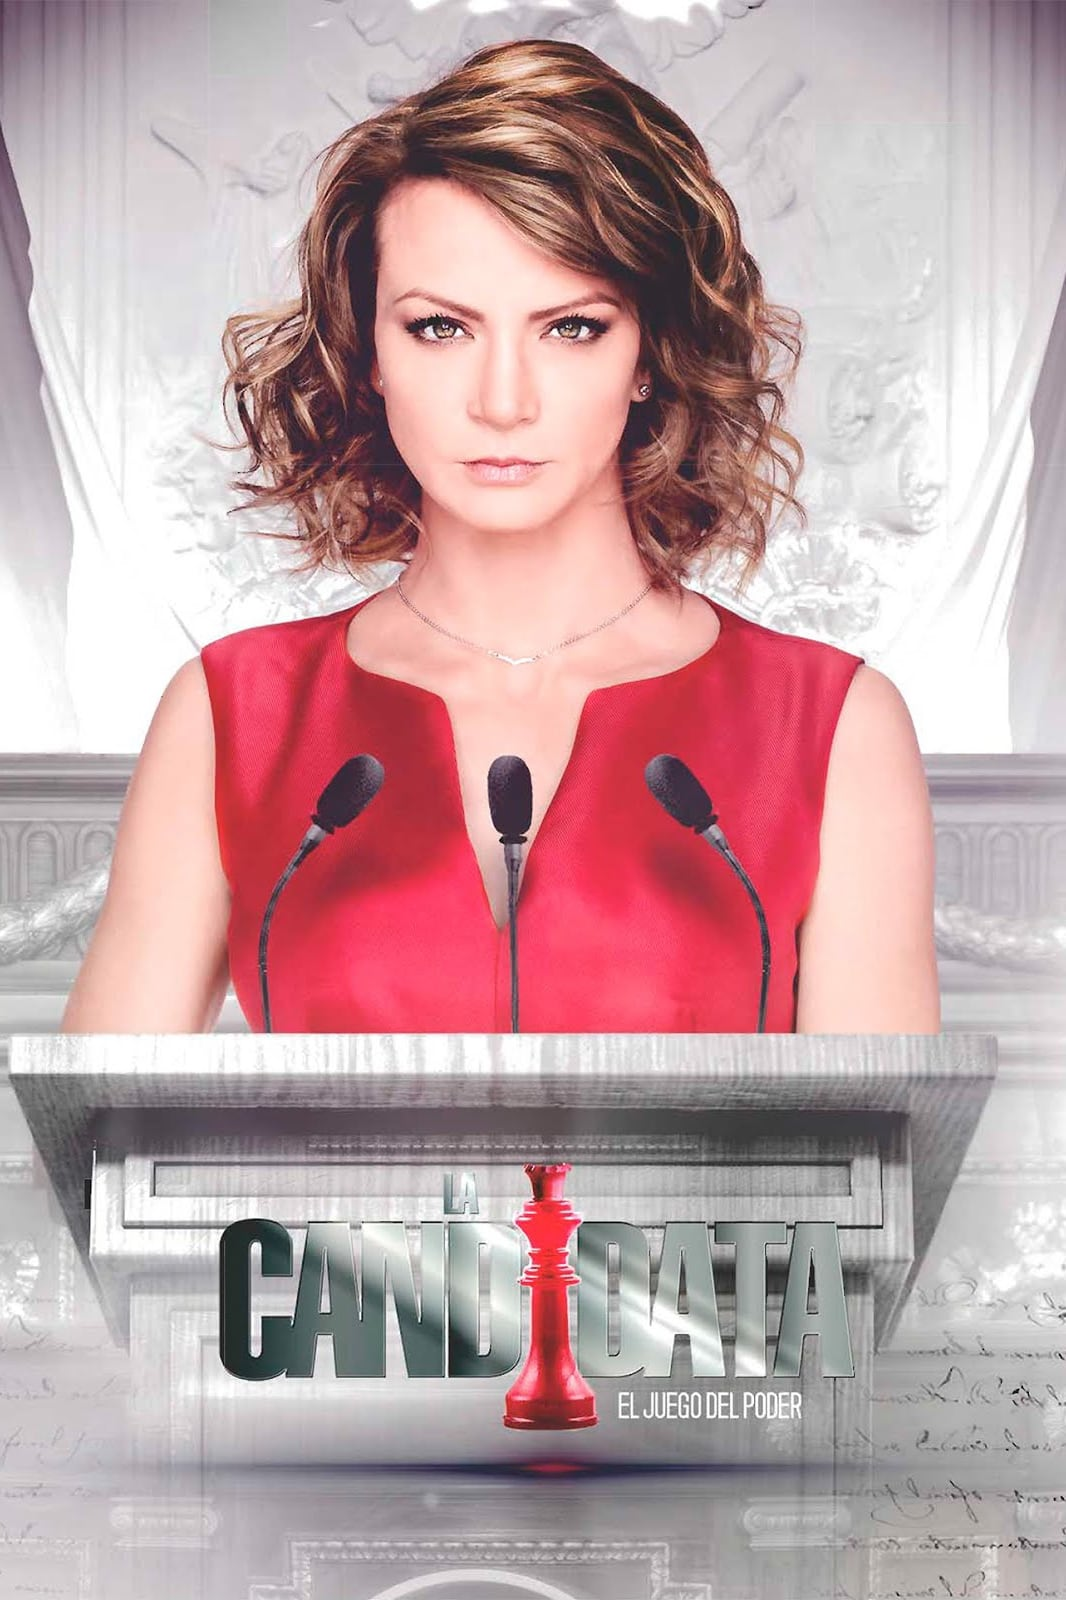 The Candidate: The Game of the Power (2016)